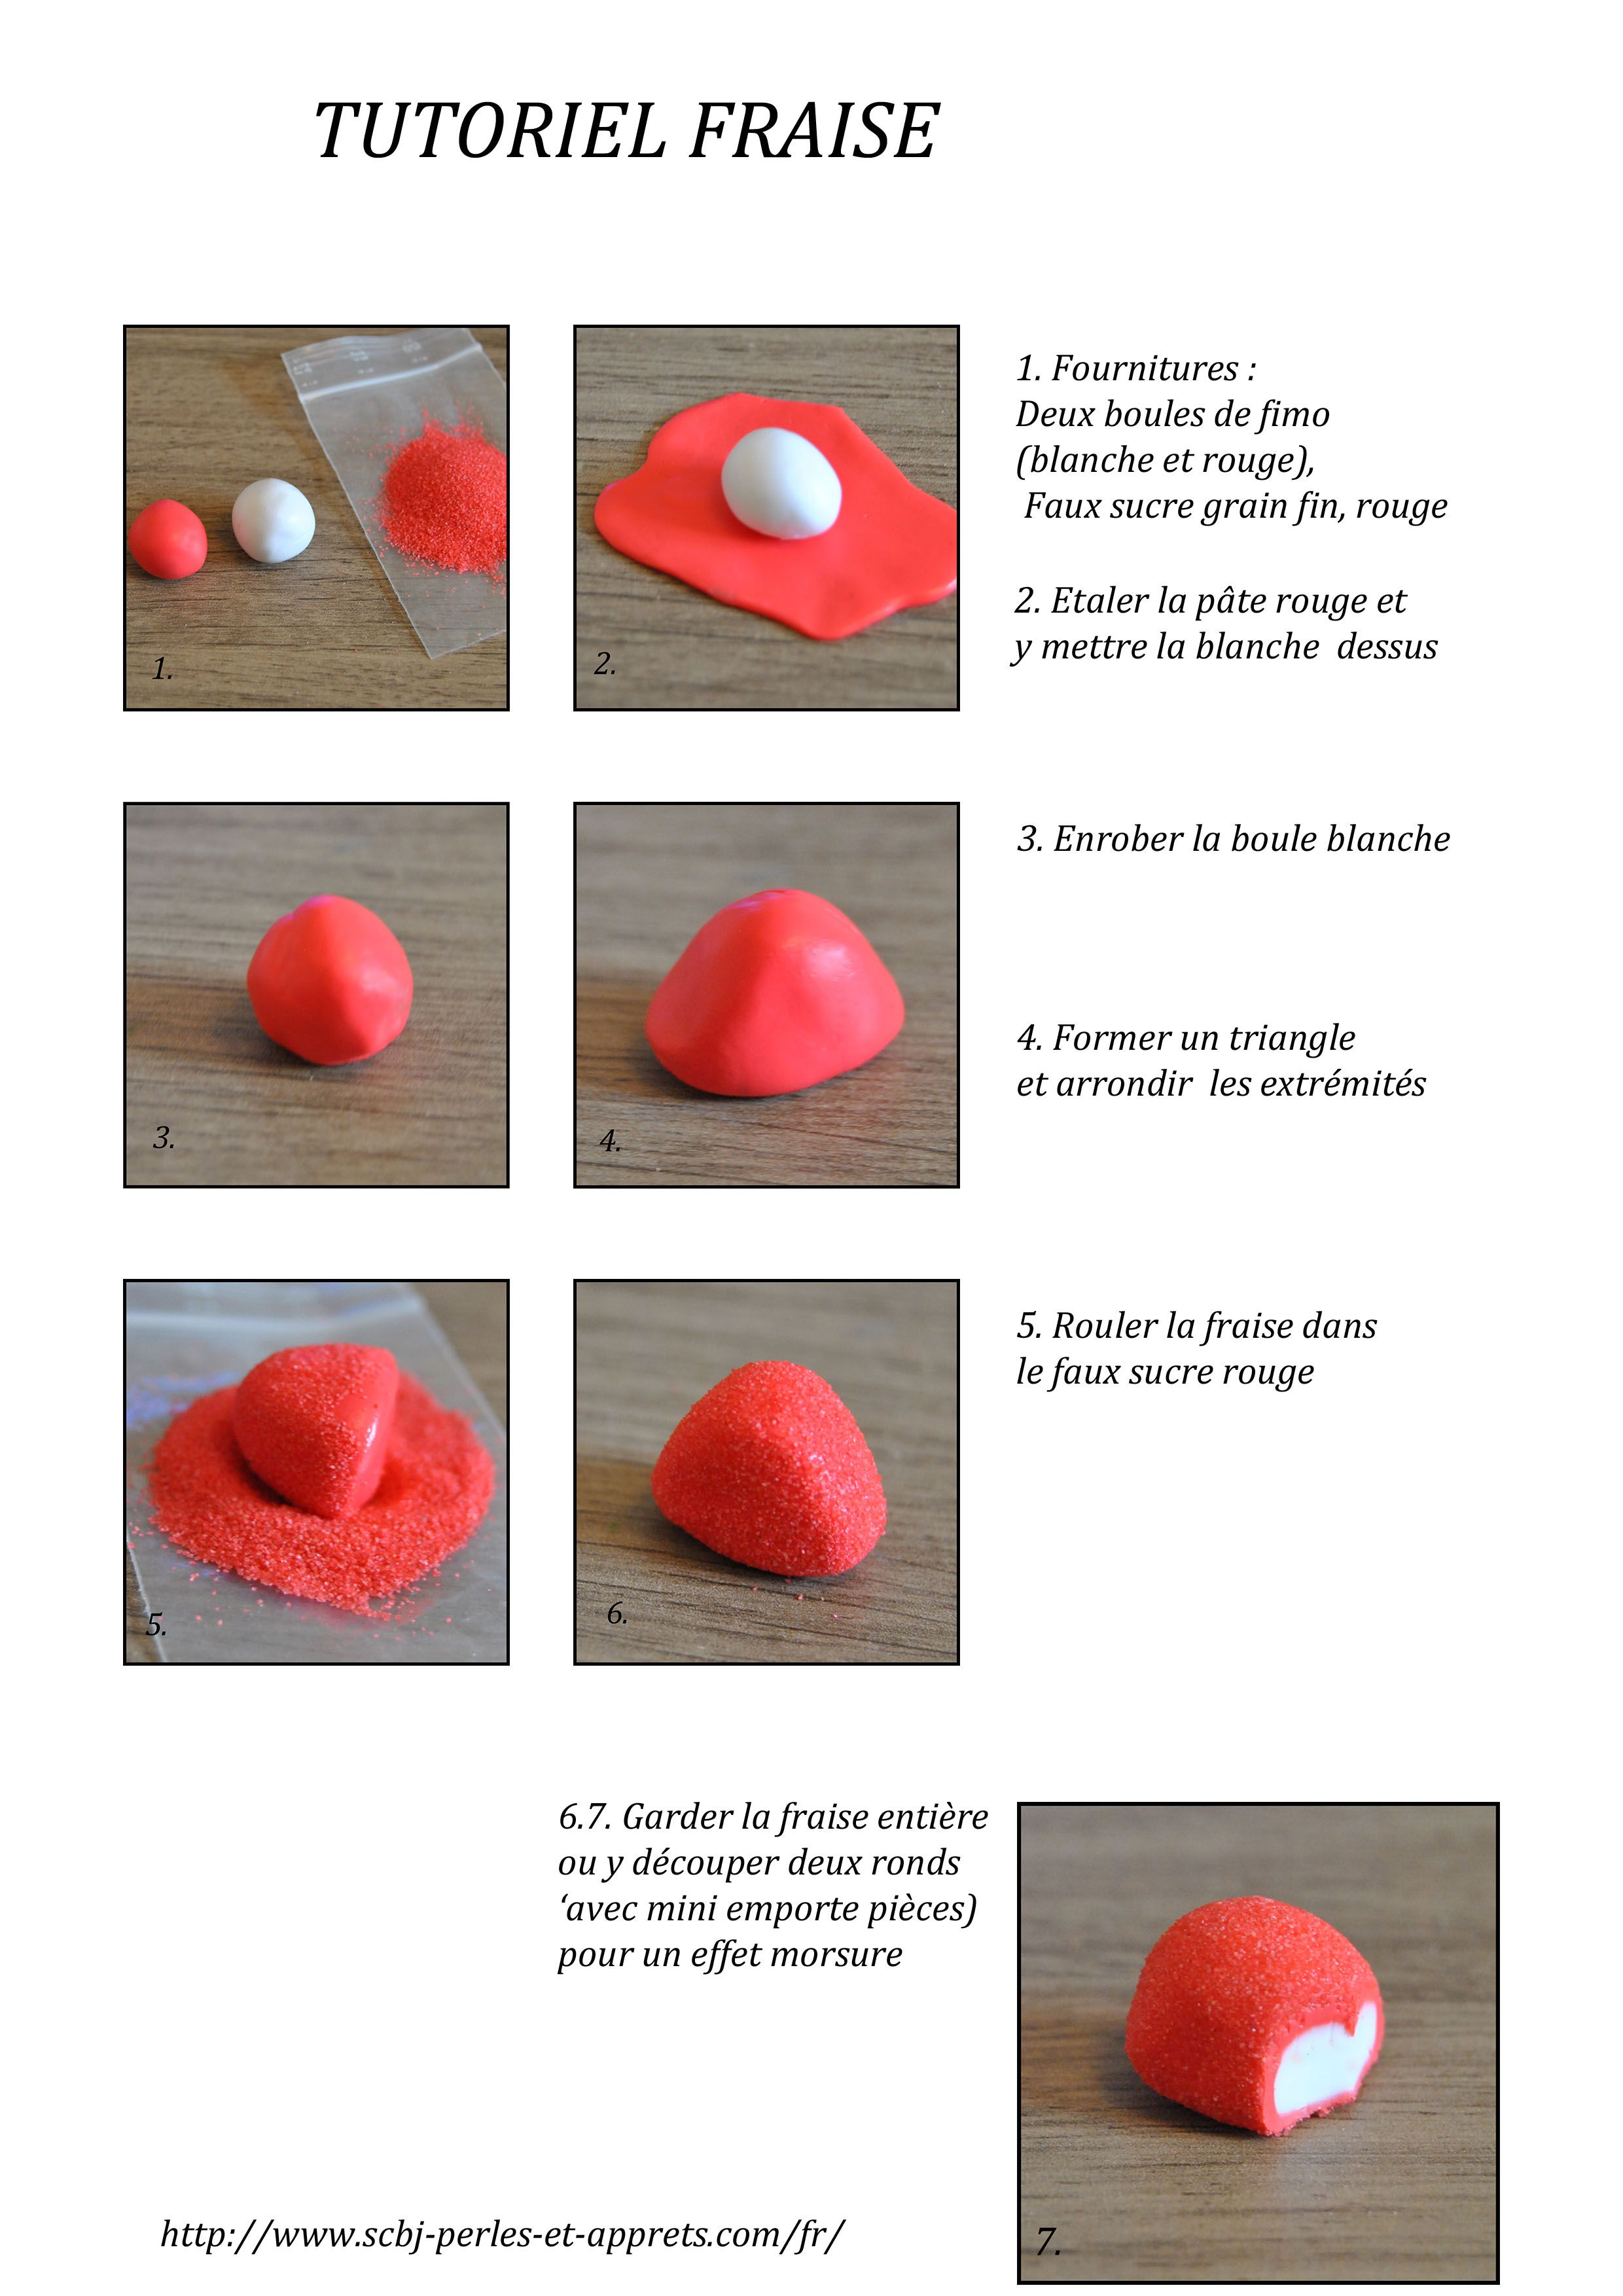 tutoriel fraise bonbon fimo ultra rapide et facile niveau d butant fimo pinterest. Black Bedroom Furniture Sets. Home Design Ideas